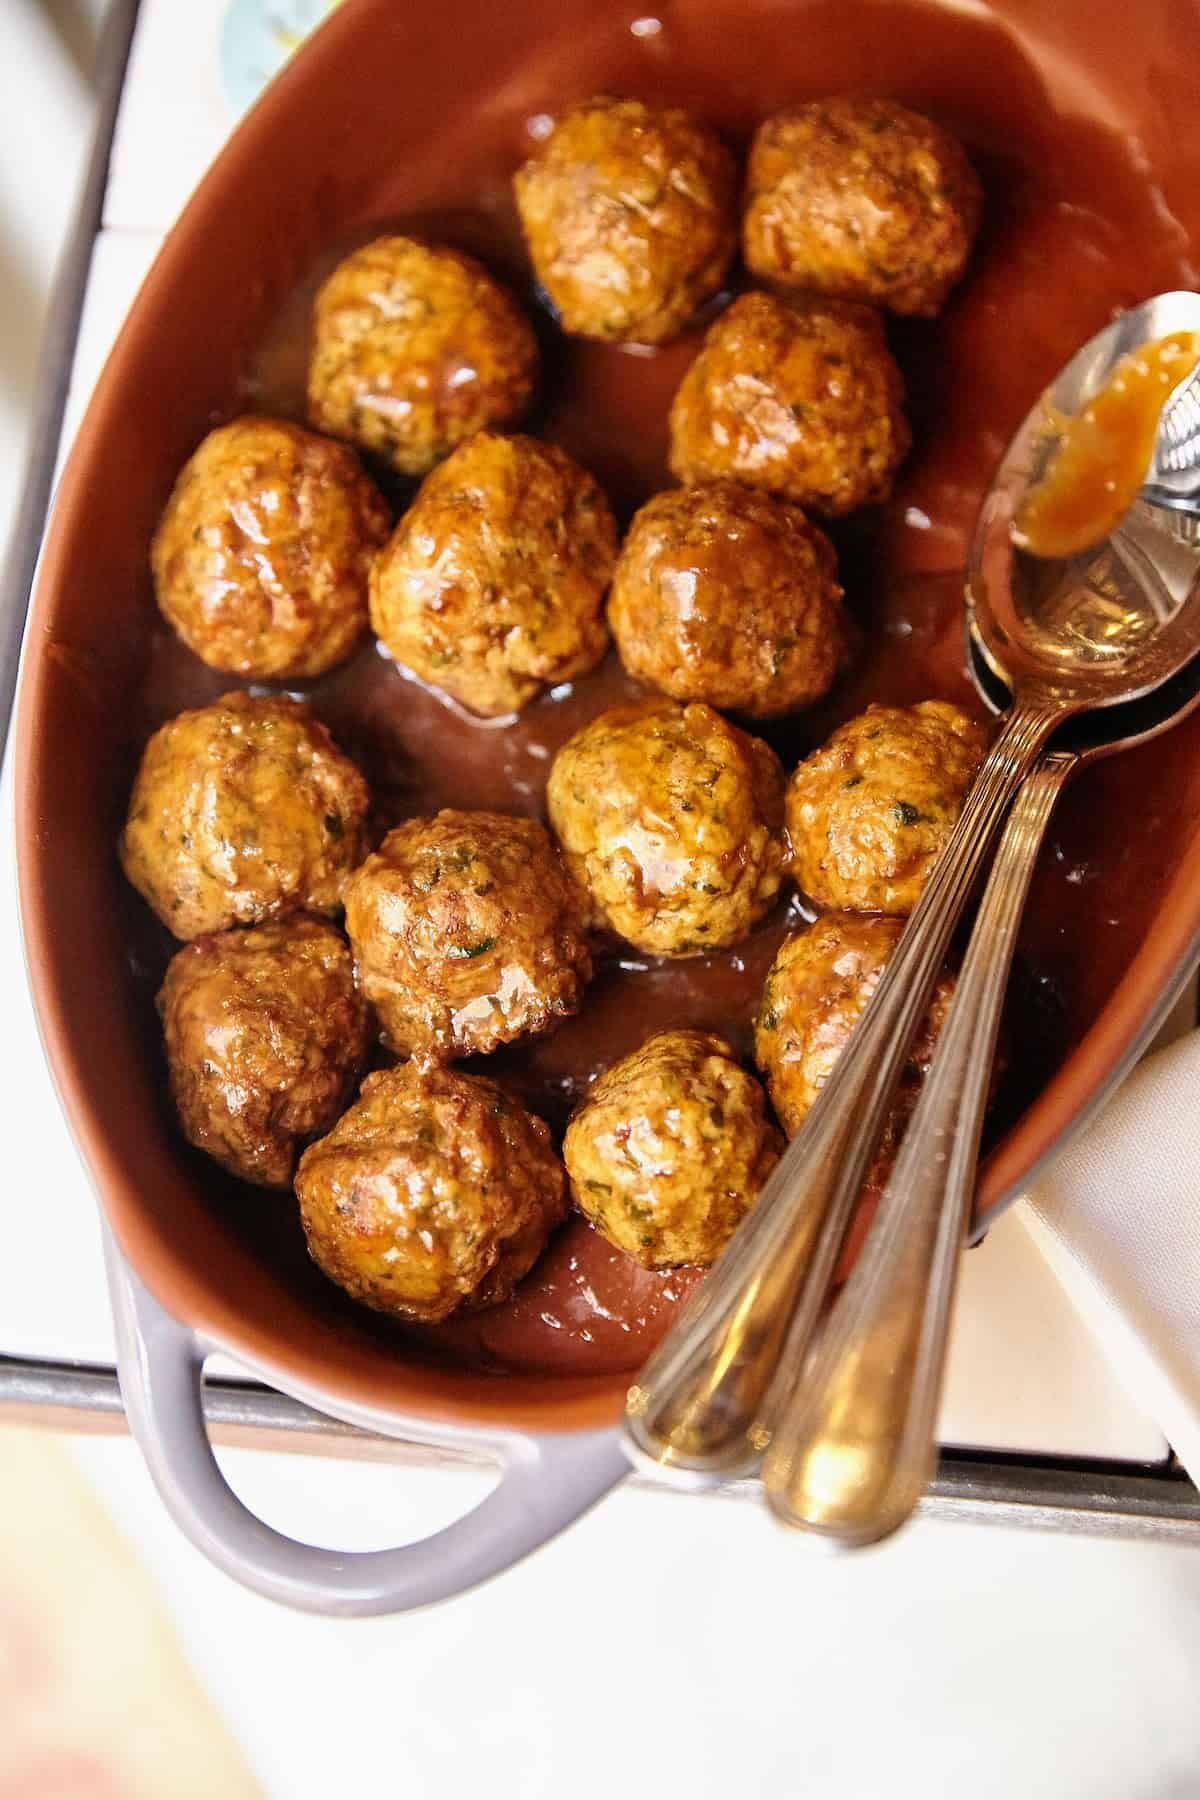 Overhead shot of meatballs in a large brown serving dish